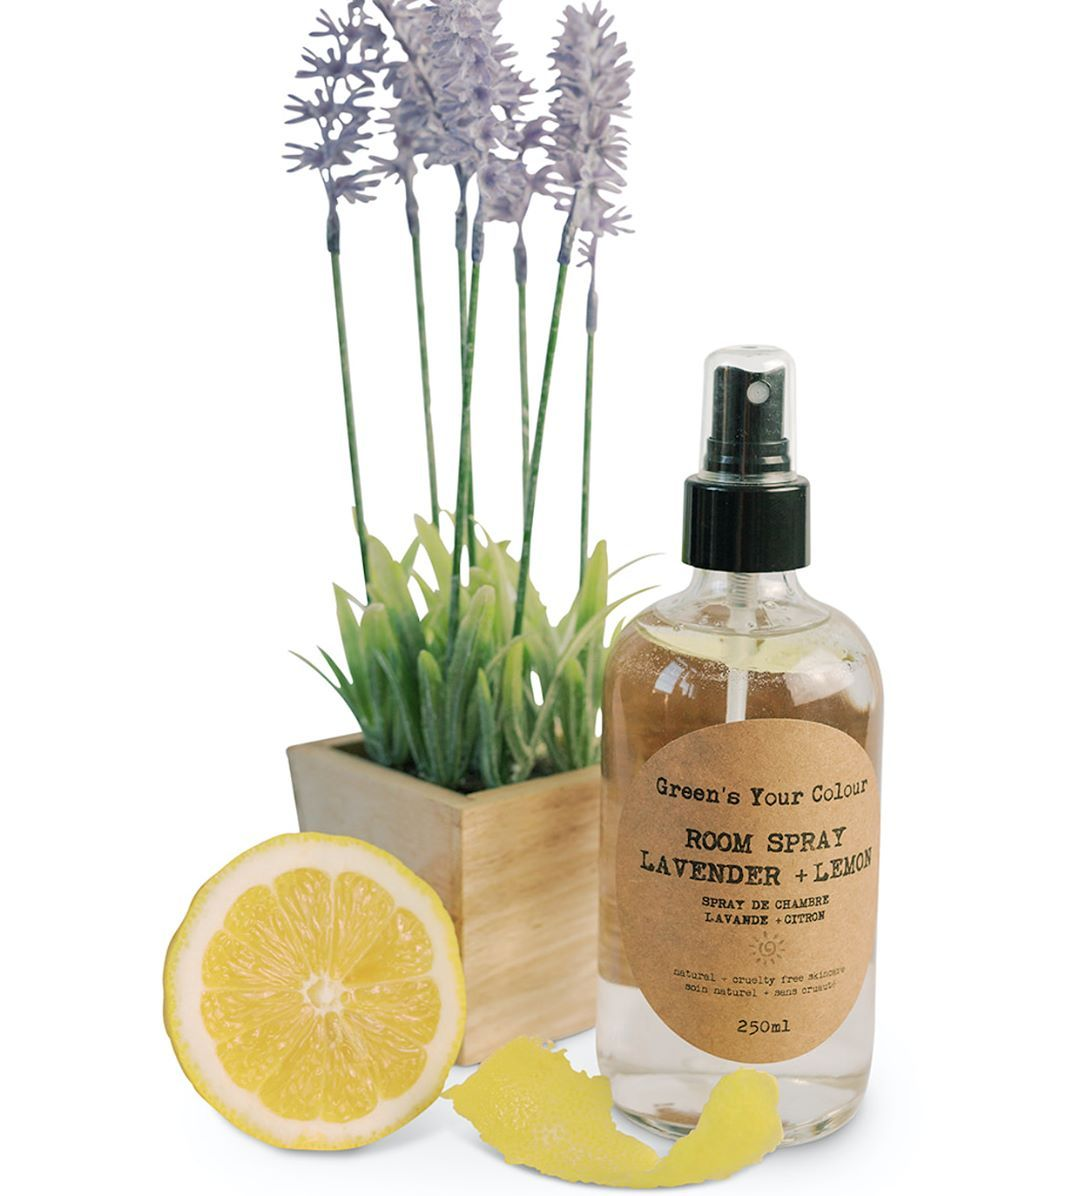 Scent your home, office, linens, gym/sports bags naturally